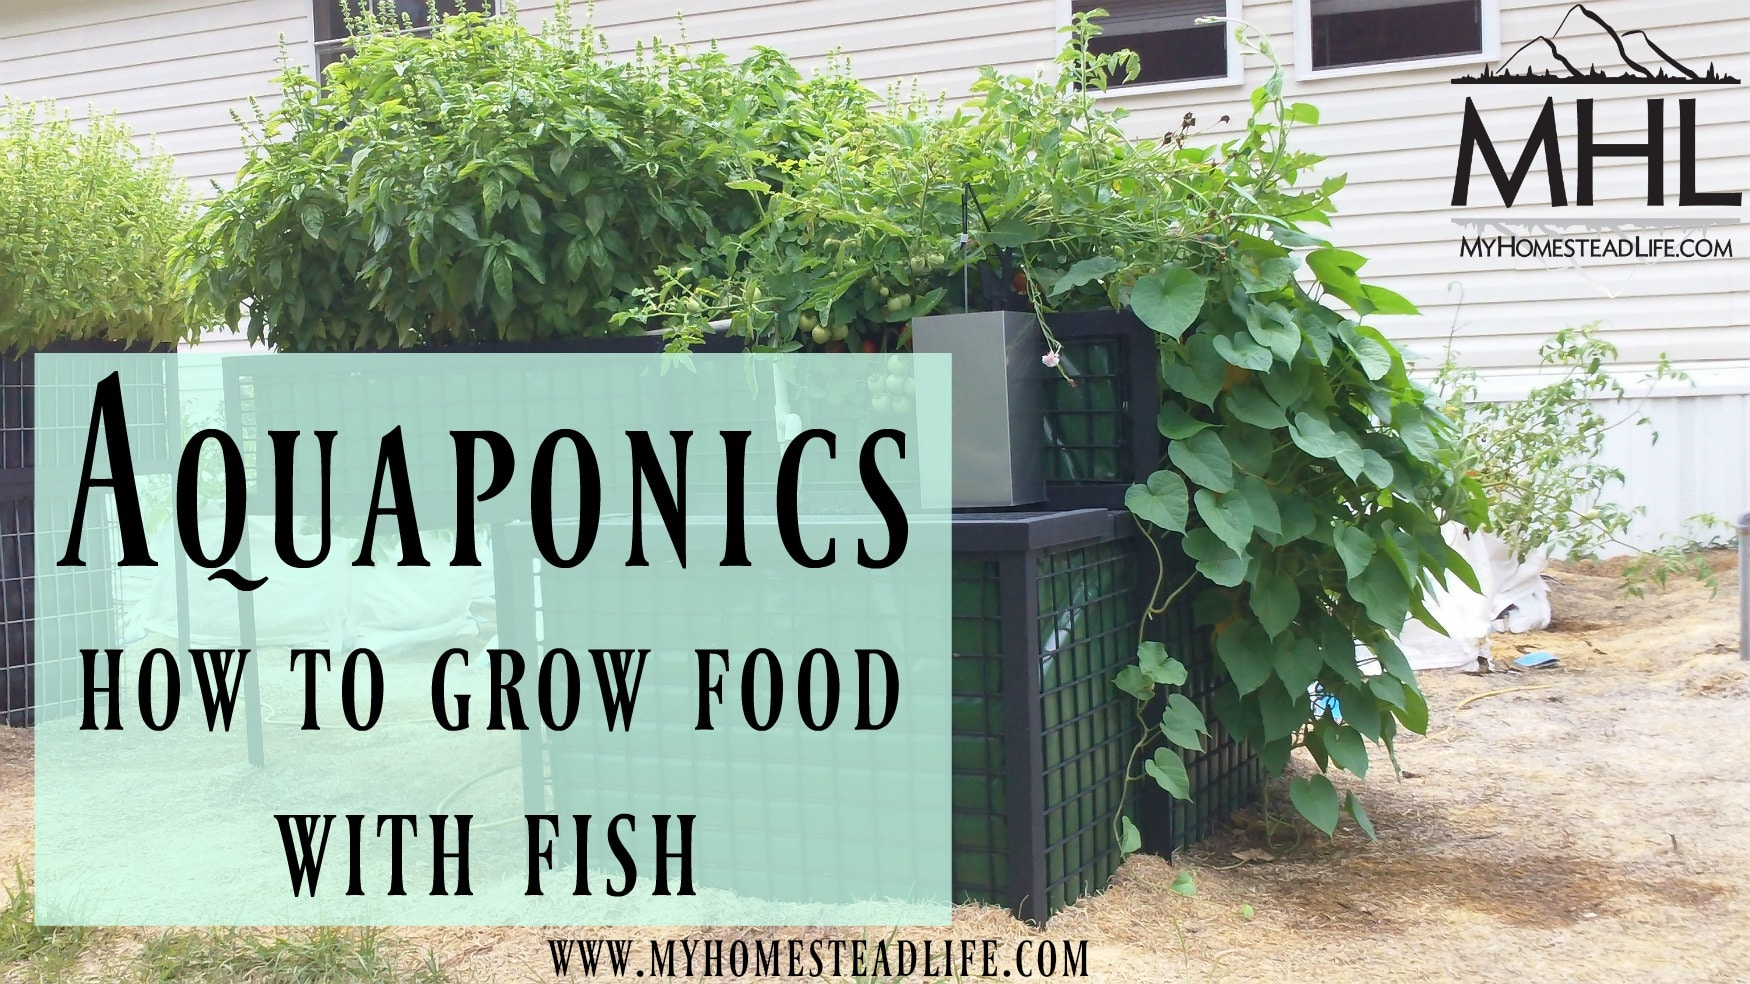 Aquaponics- how to Grow Food With Fish